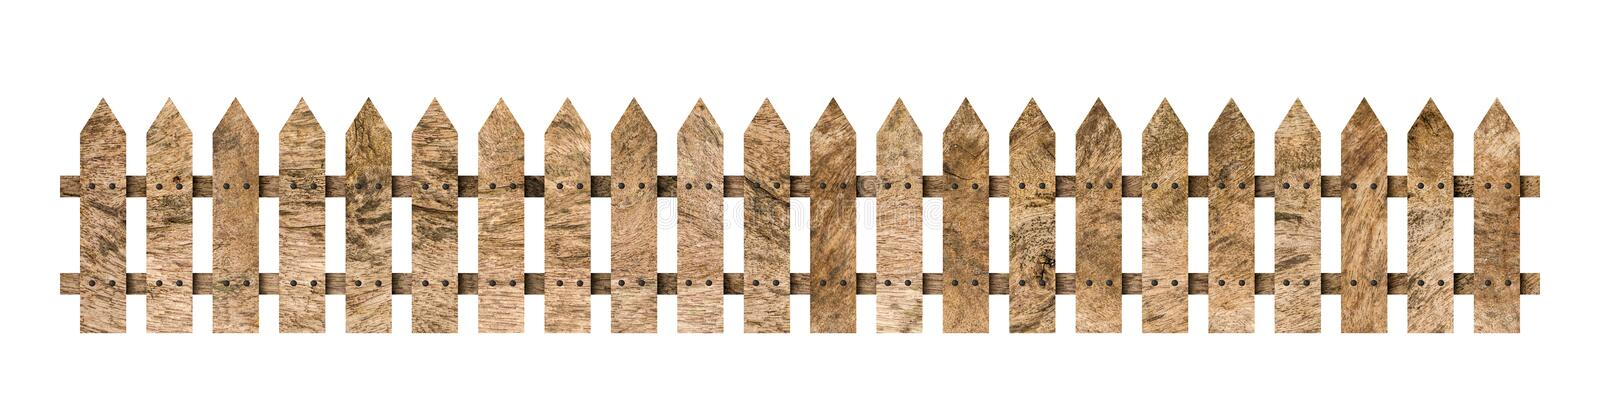 Wooden fence isolated on white background. Clipping path include in this image.  royalty free stock images